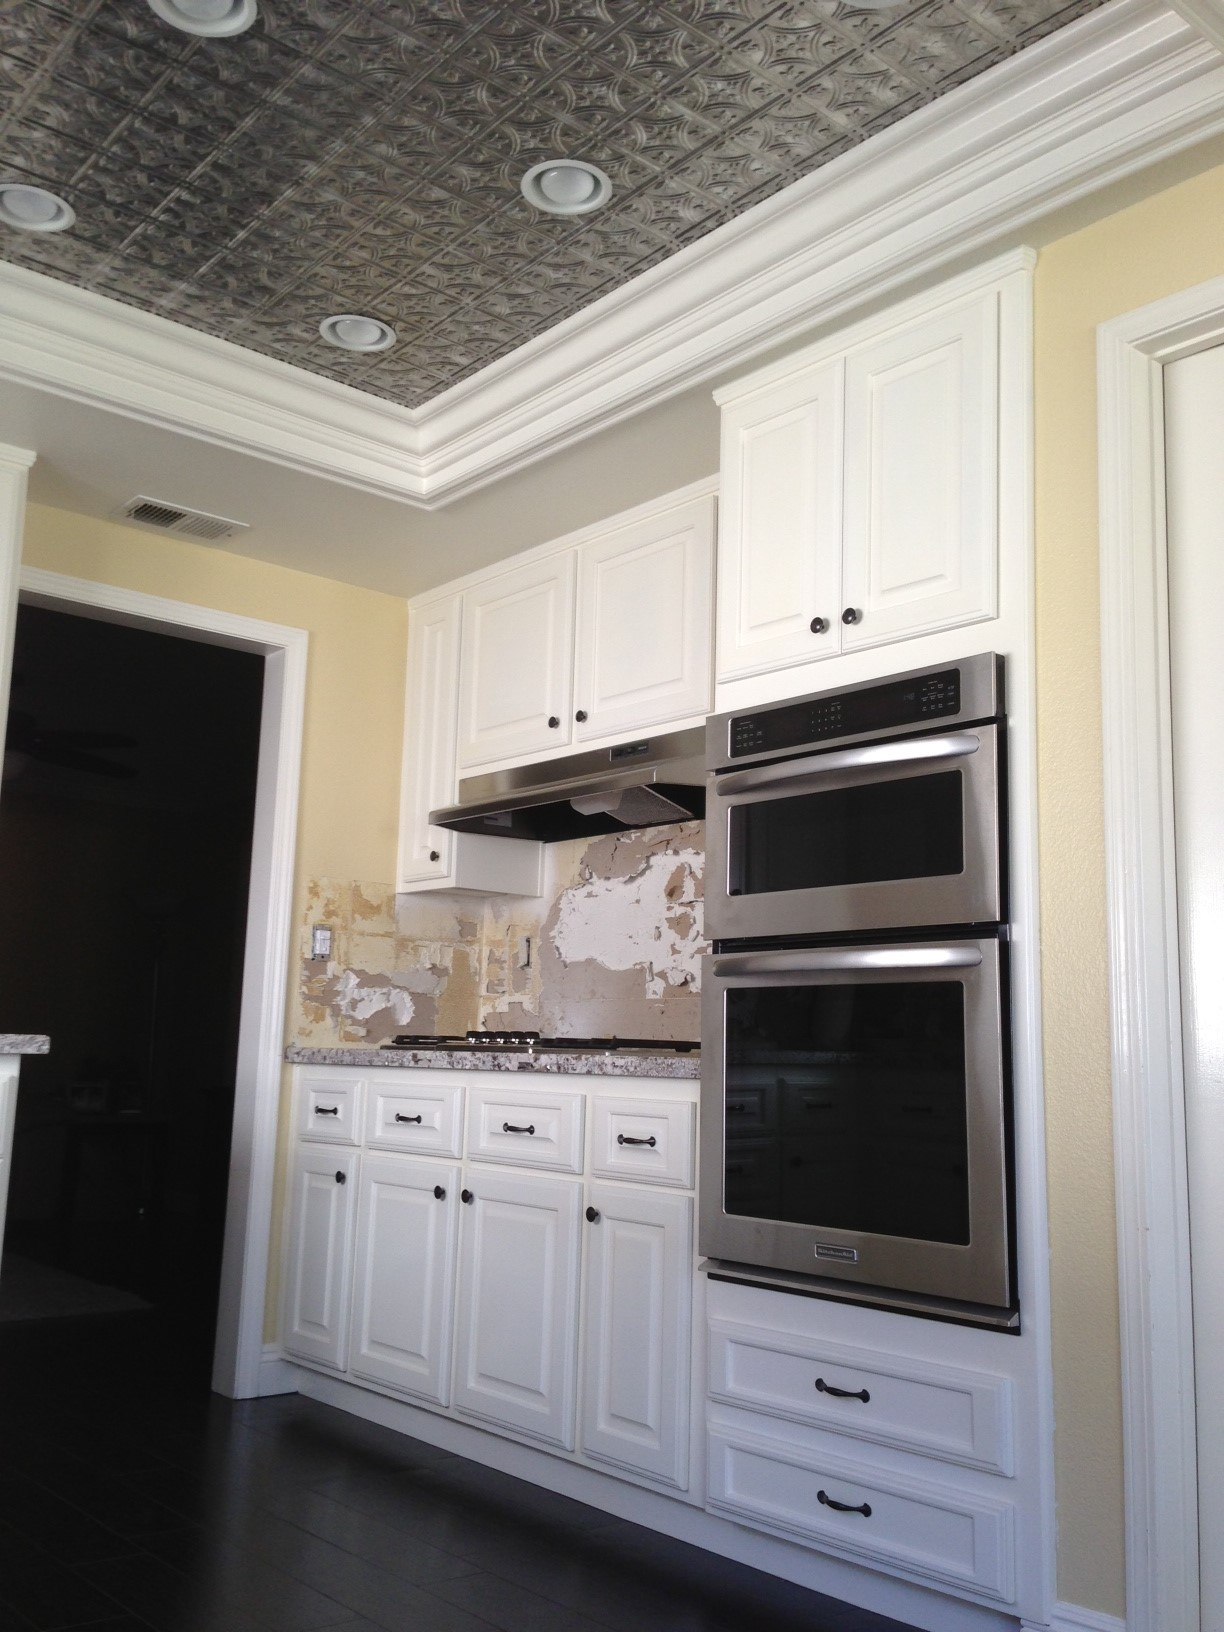 refacing kitchen cabinets before and after cooking oil container supplies cabinet -temecula - murrieta